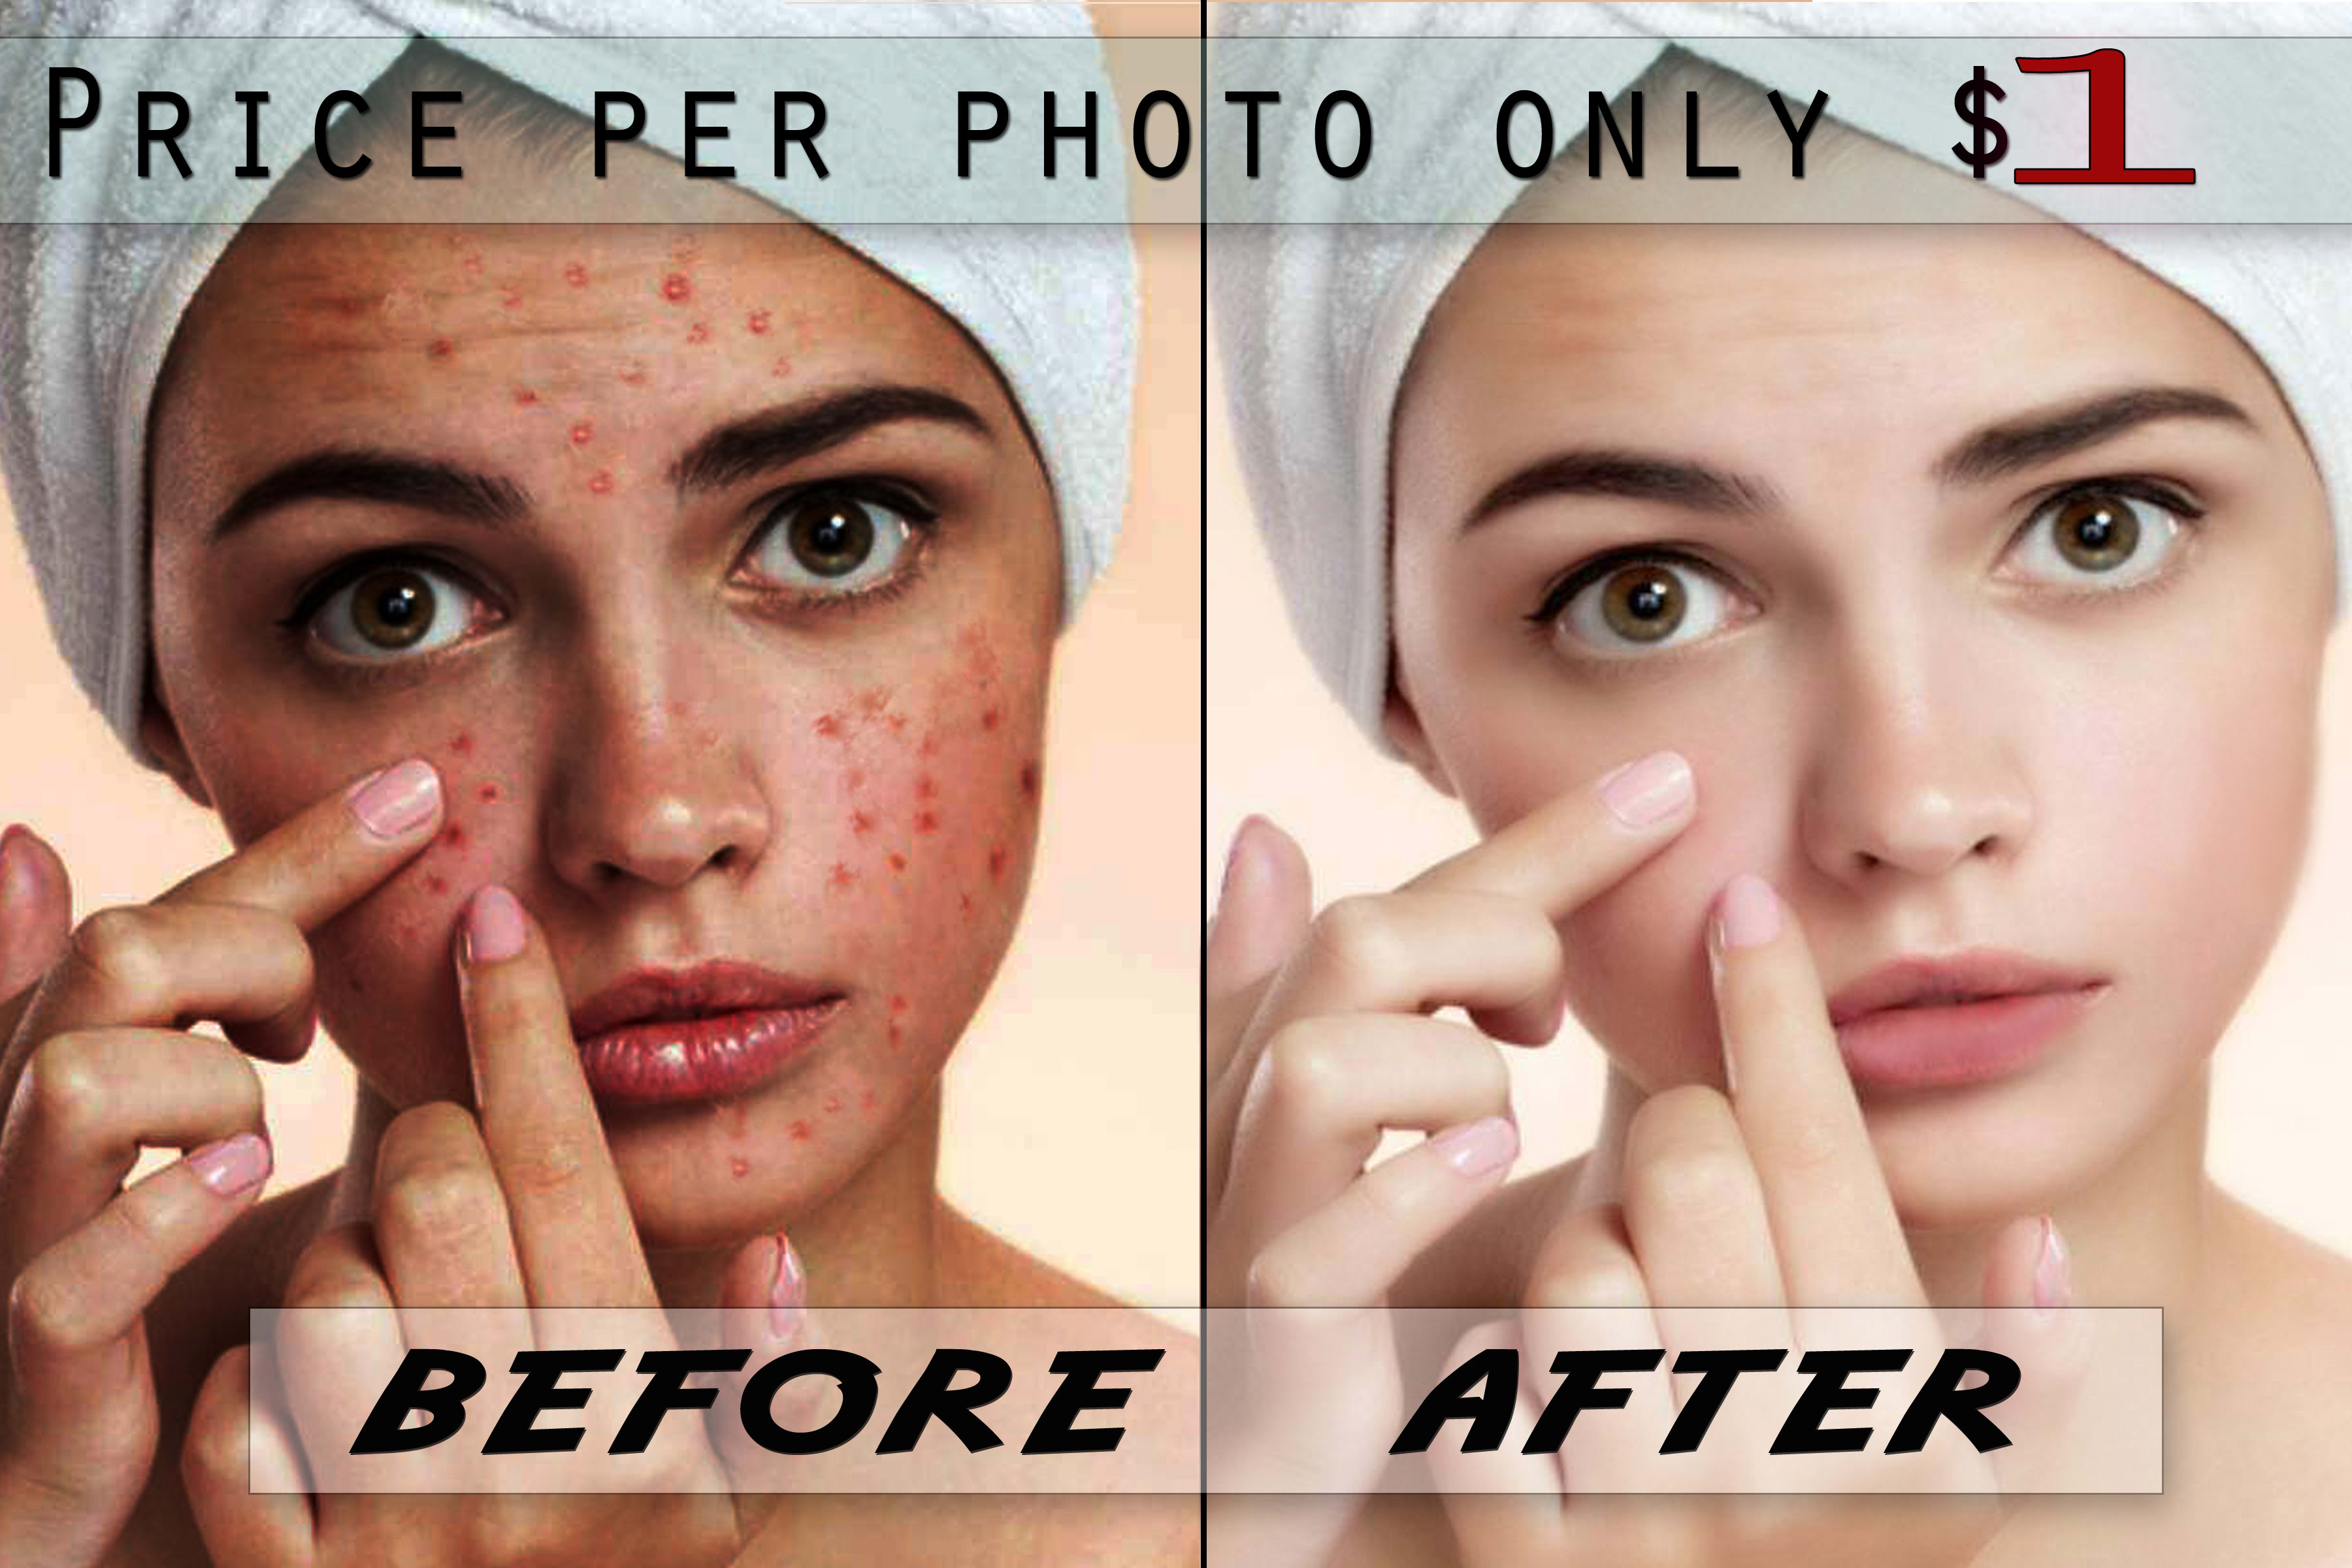 I will retouch photos and edit images with fast delivery